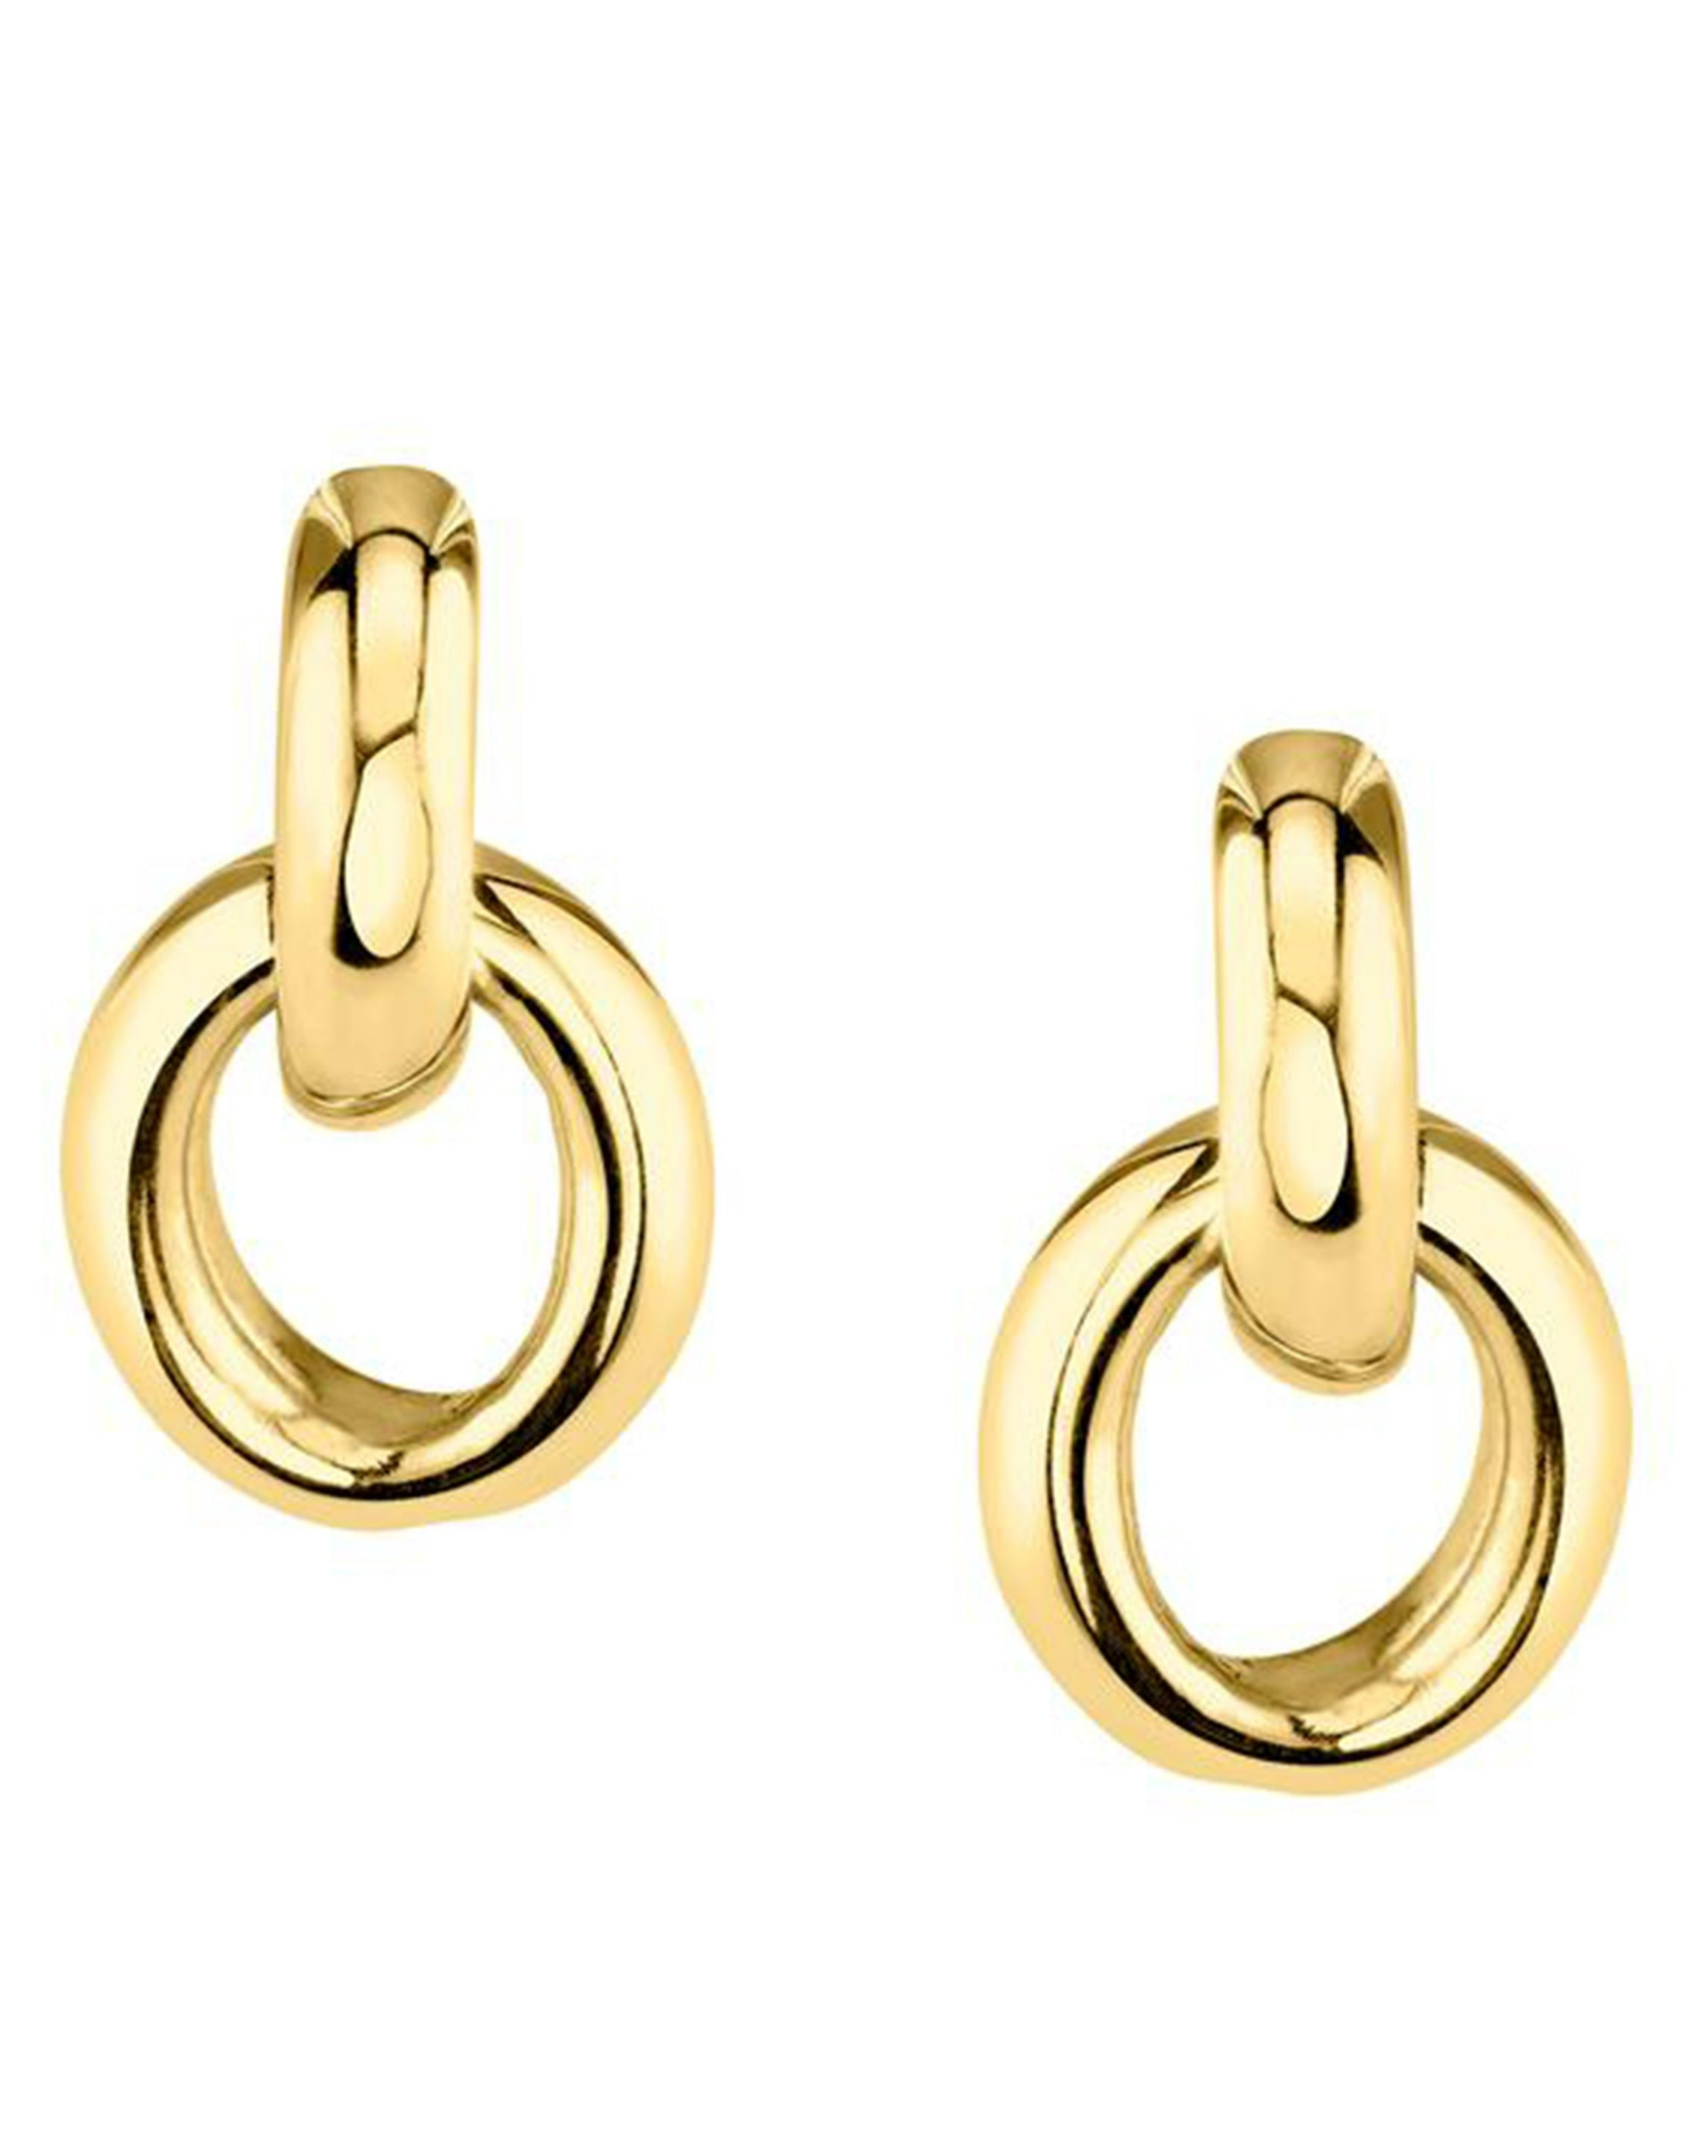 Link Earrings in Yellow Gold Plated